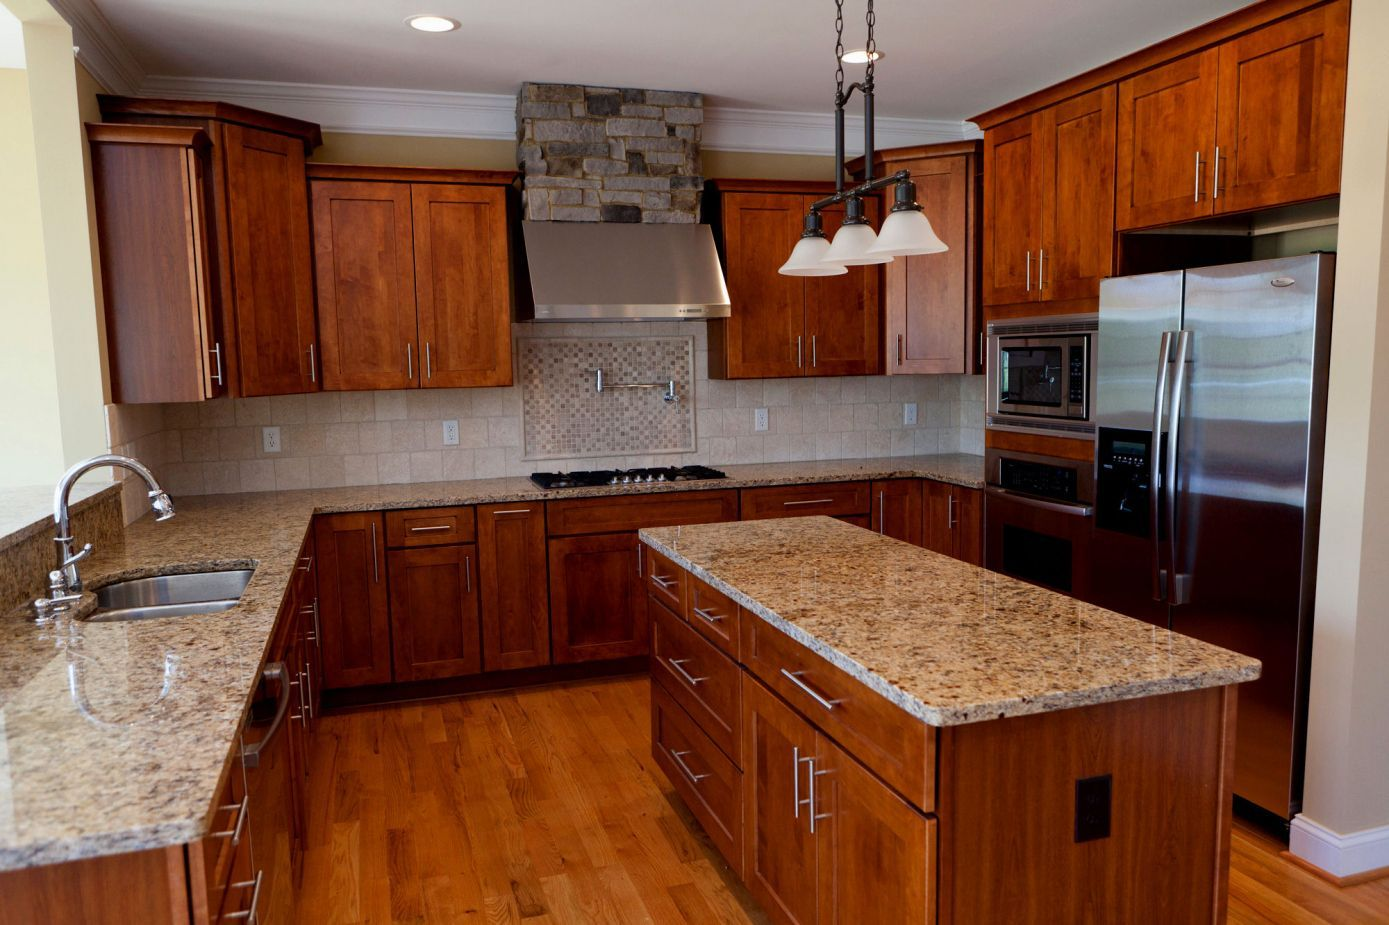 2019 How Much Should You Spend On A Kitchen Remodel Modern Interior Paint Colors Check